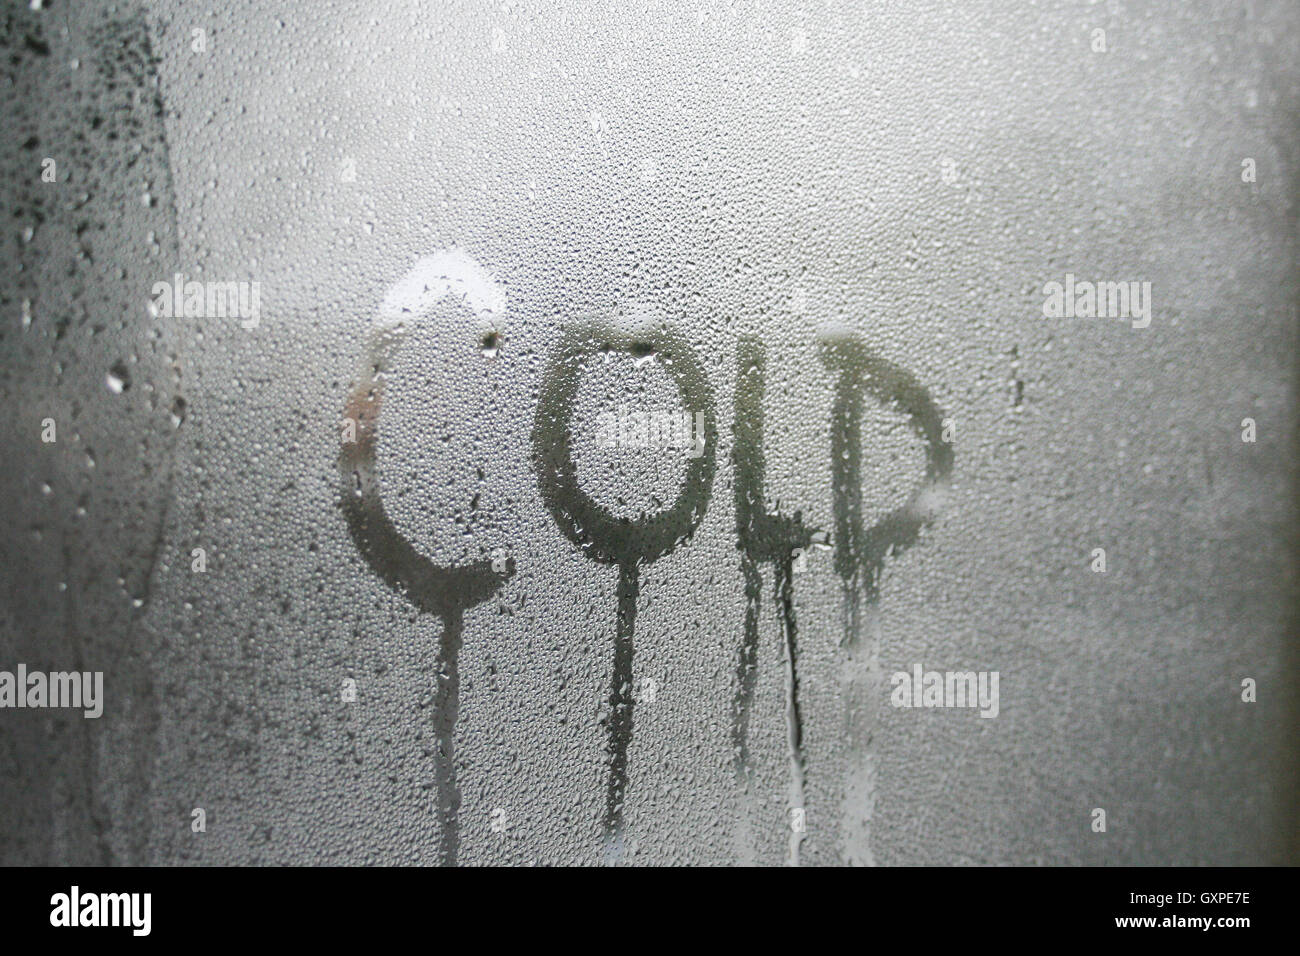 Cold text written in condensation on glass window pane. - Stock Image